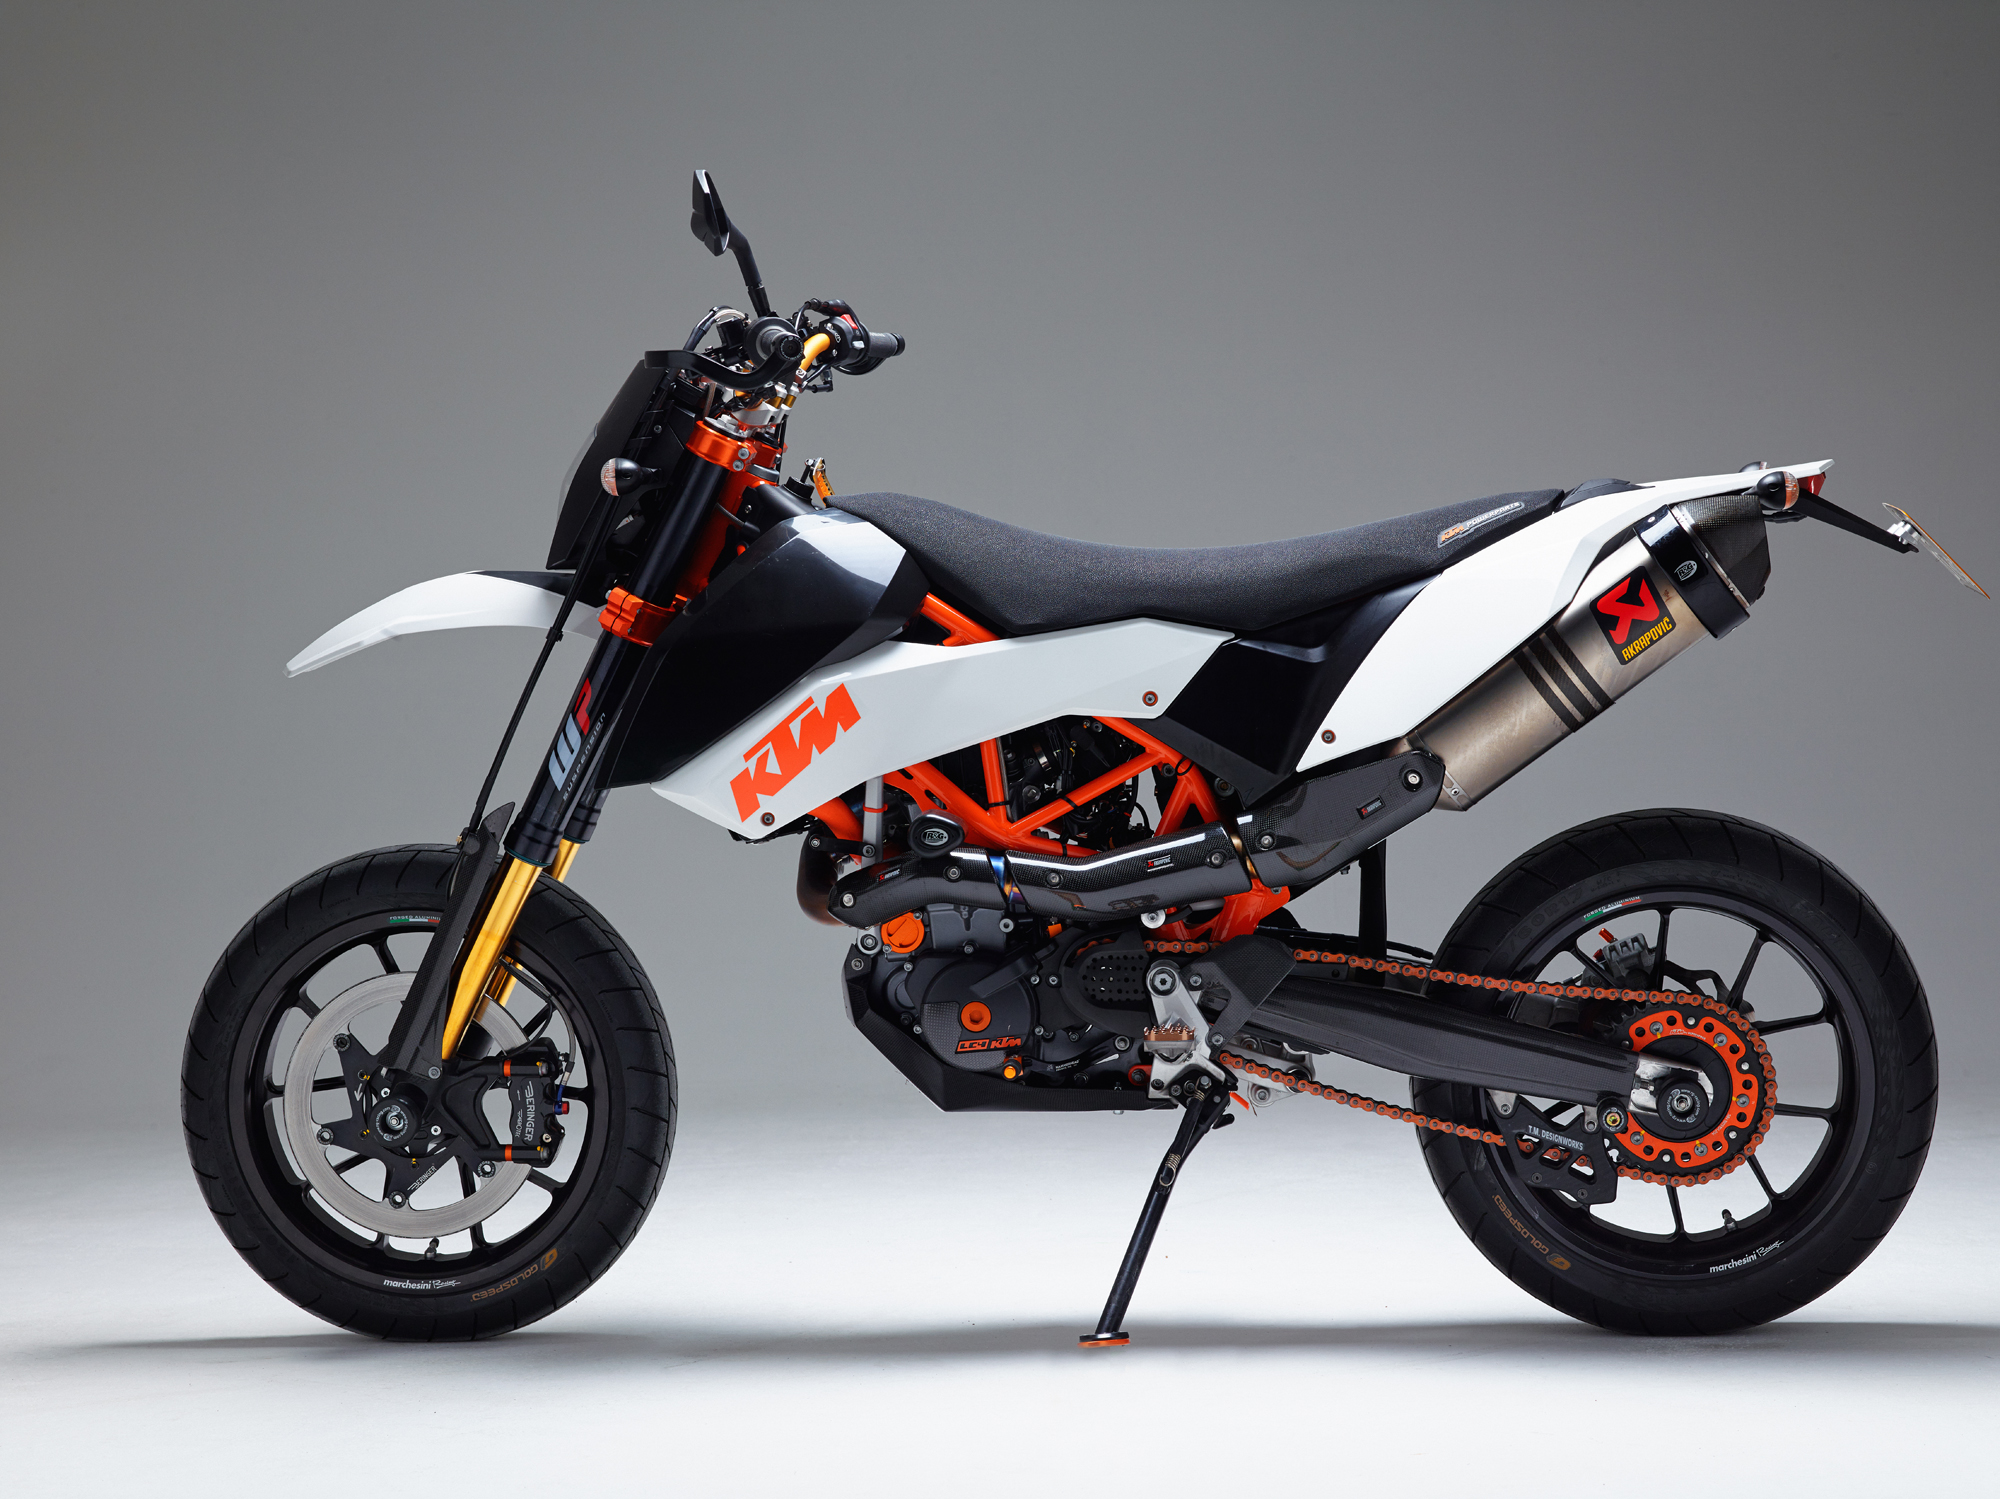 ktm 690 smc derestricted